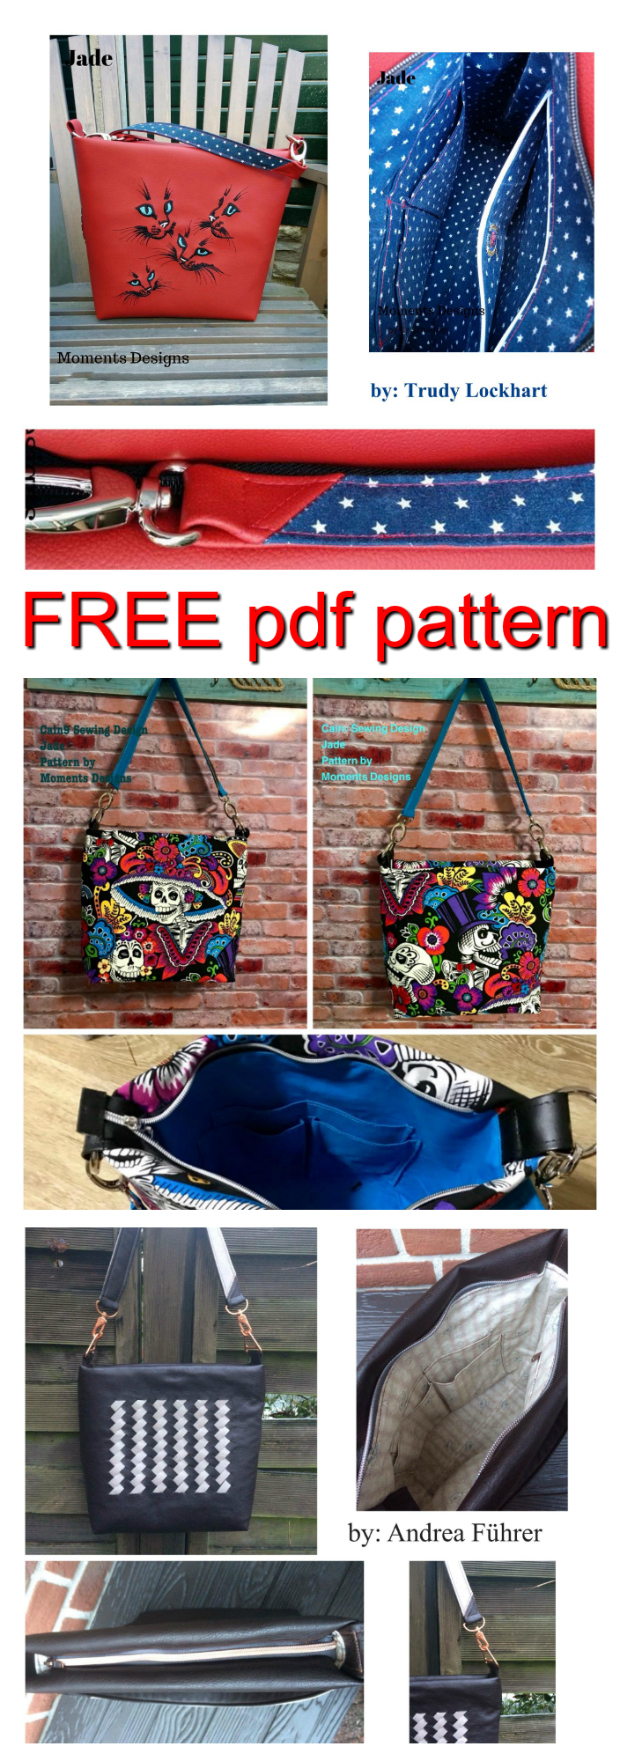 """Here is a FREE pdf pattern to make a medium-sized purse called """"Jade"""". This fast, easy pattern can be made with cotton, denim, decorator fabrics, cork or faux leather. Jade can be completed by a confident beginner to intermediate sewer and she will measure approximately 12"""" wide by 10 1⁄2"""" high by 4 1⁄2"""" deep."""